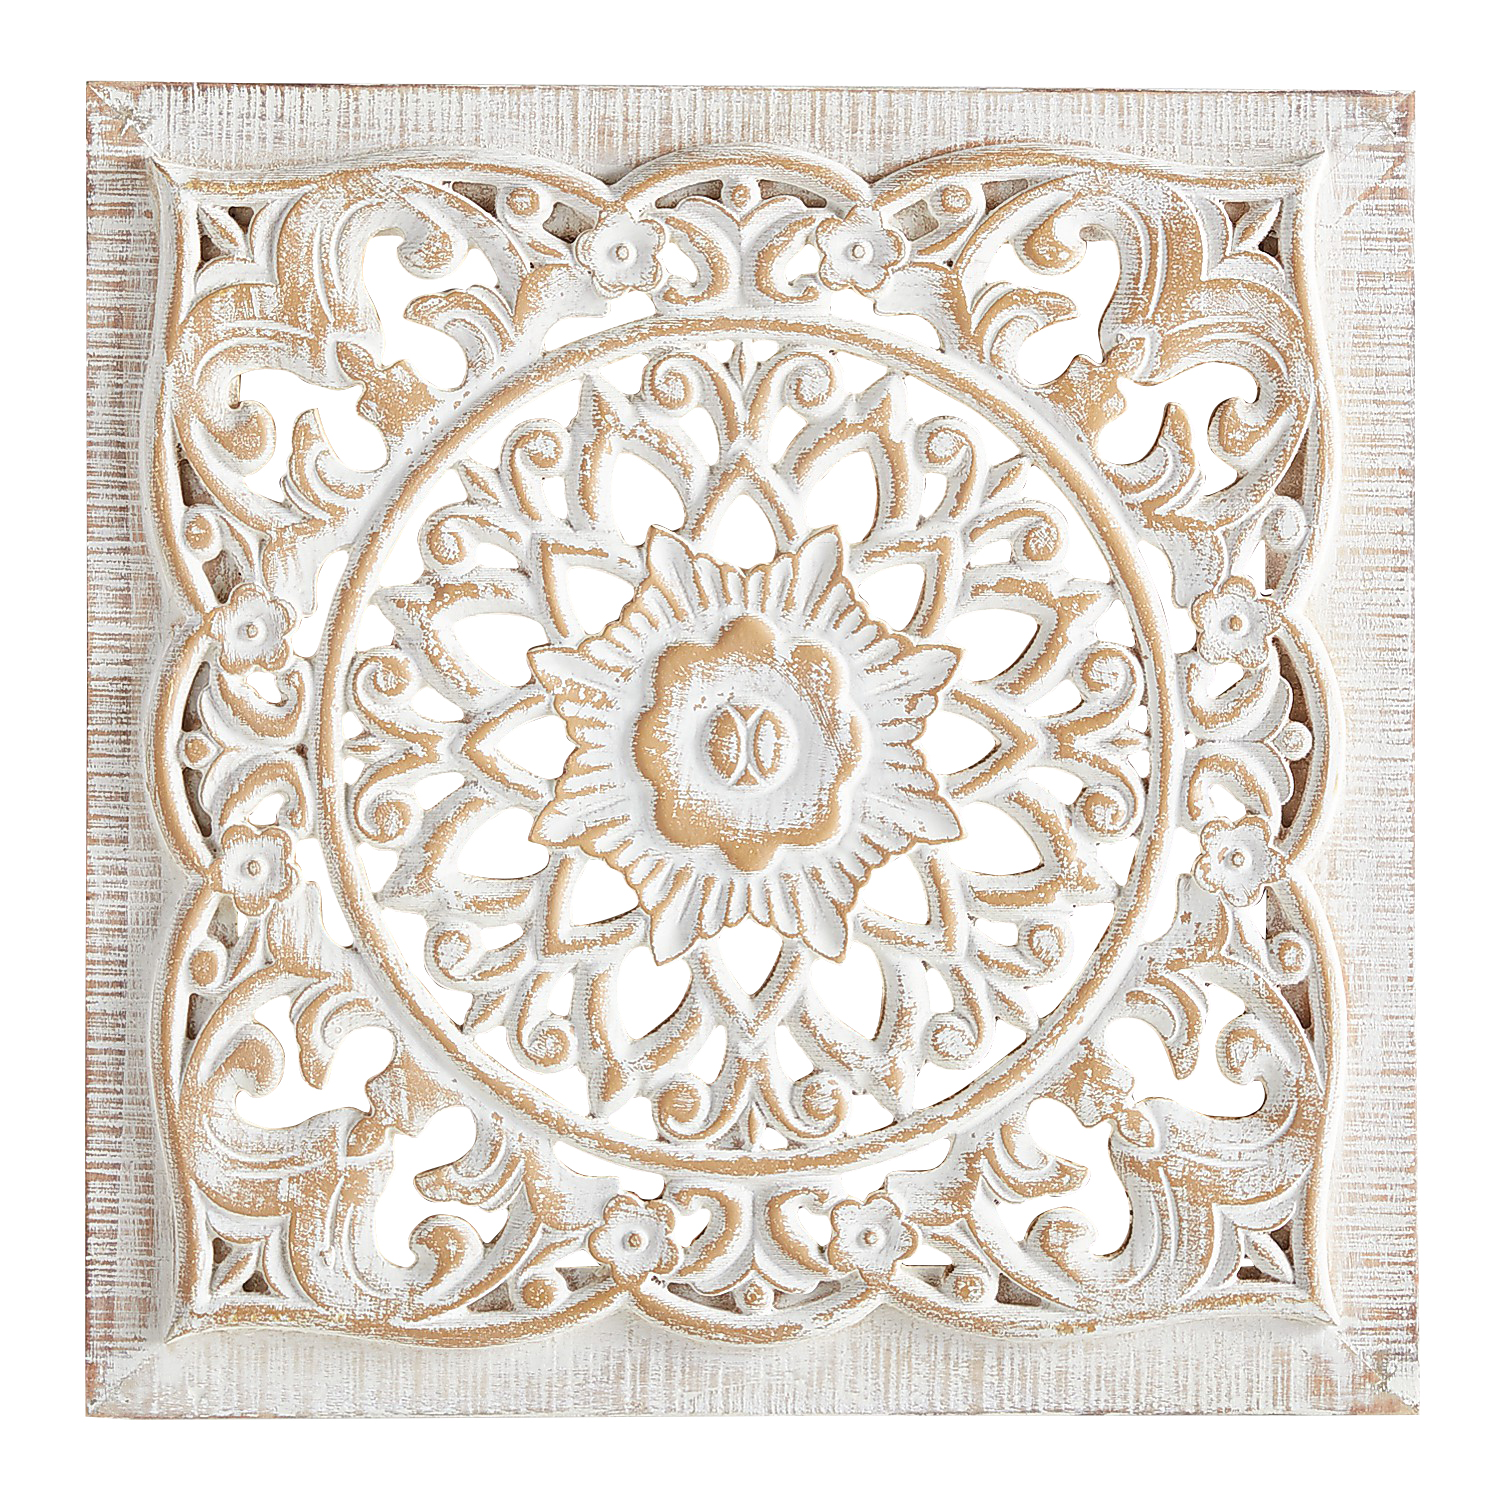 Carved Whitewashed Wall Decor